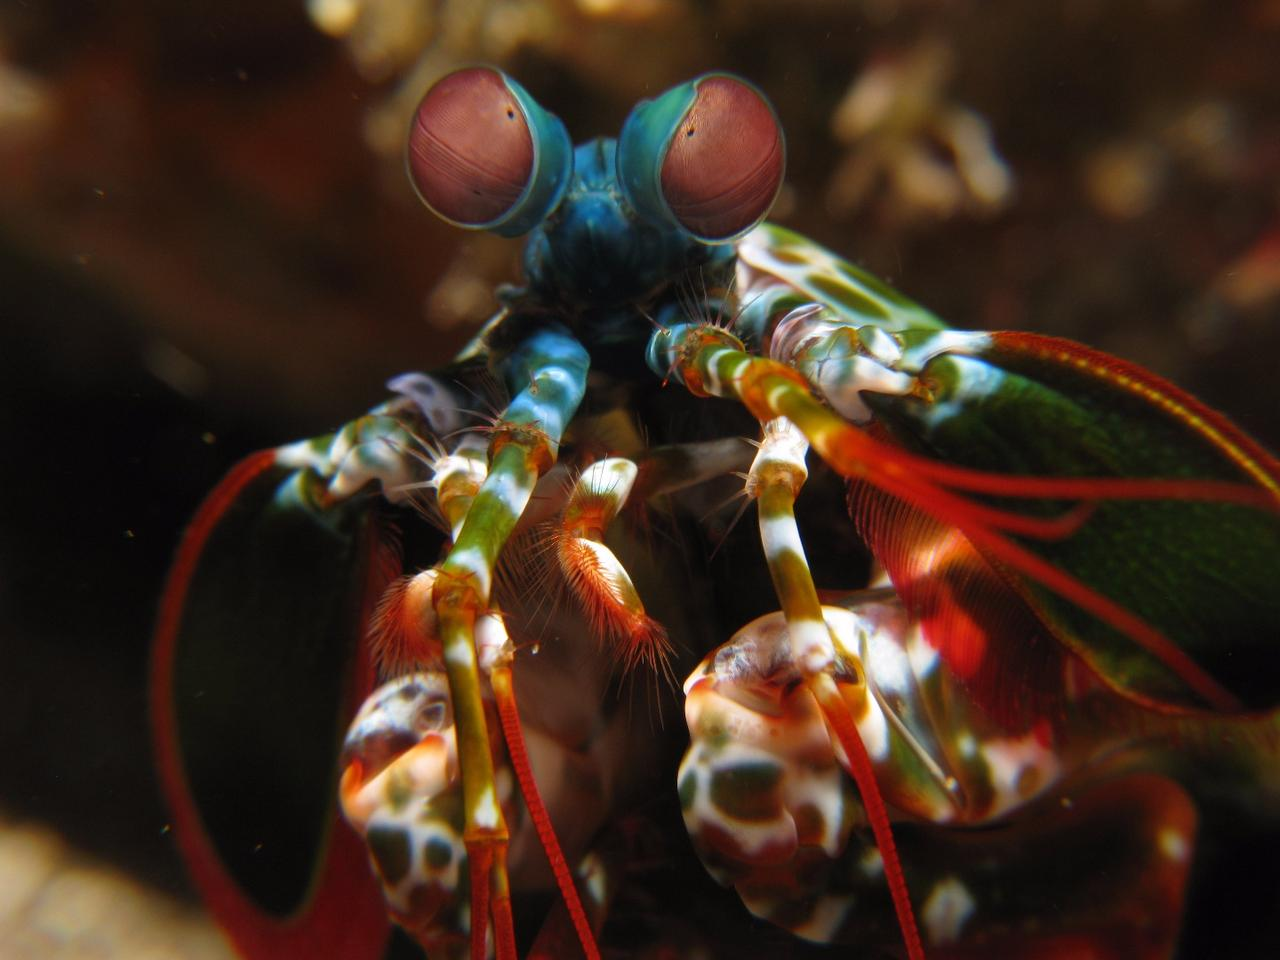 Researchers have determined exactly how mantis shrimp are able to control light to communicate